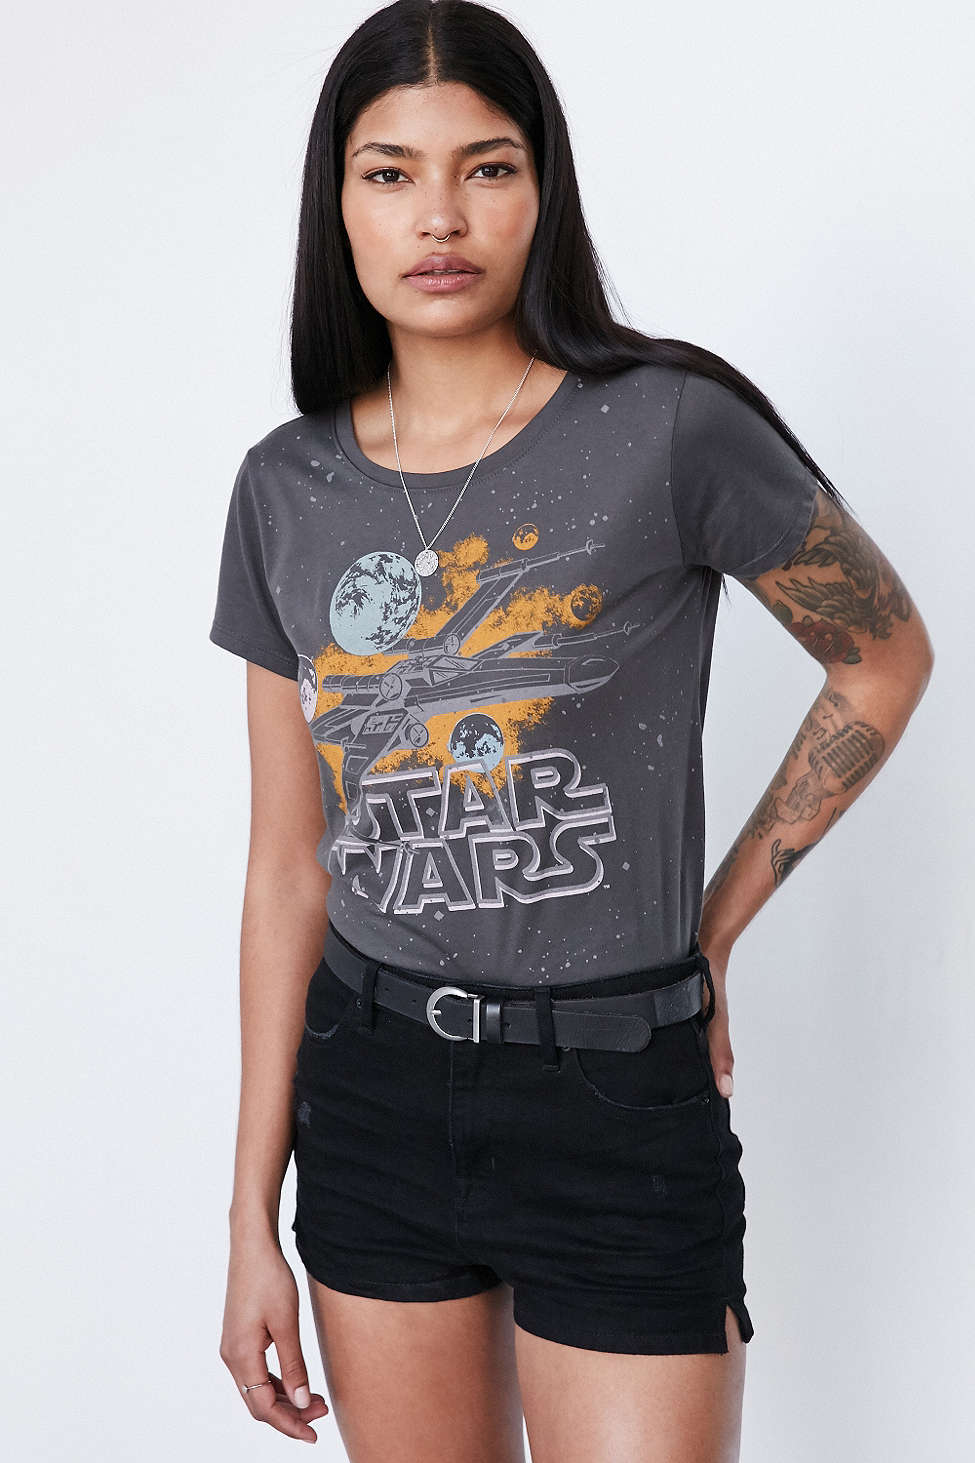 Star Wars Galaxy tee at Urban Outfitters